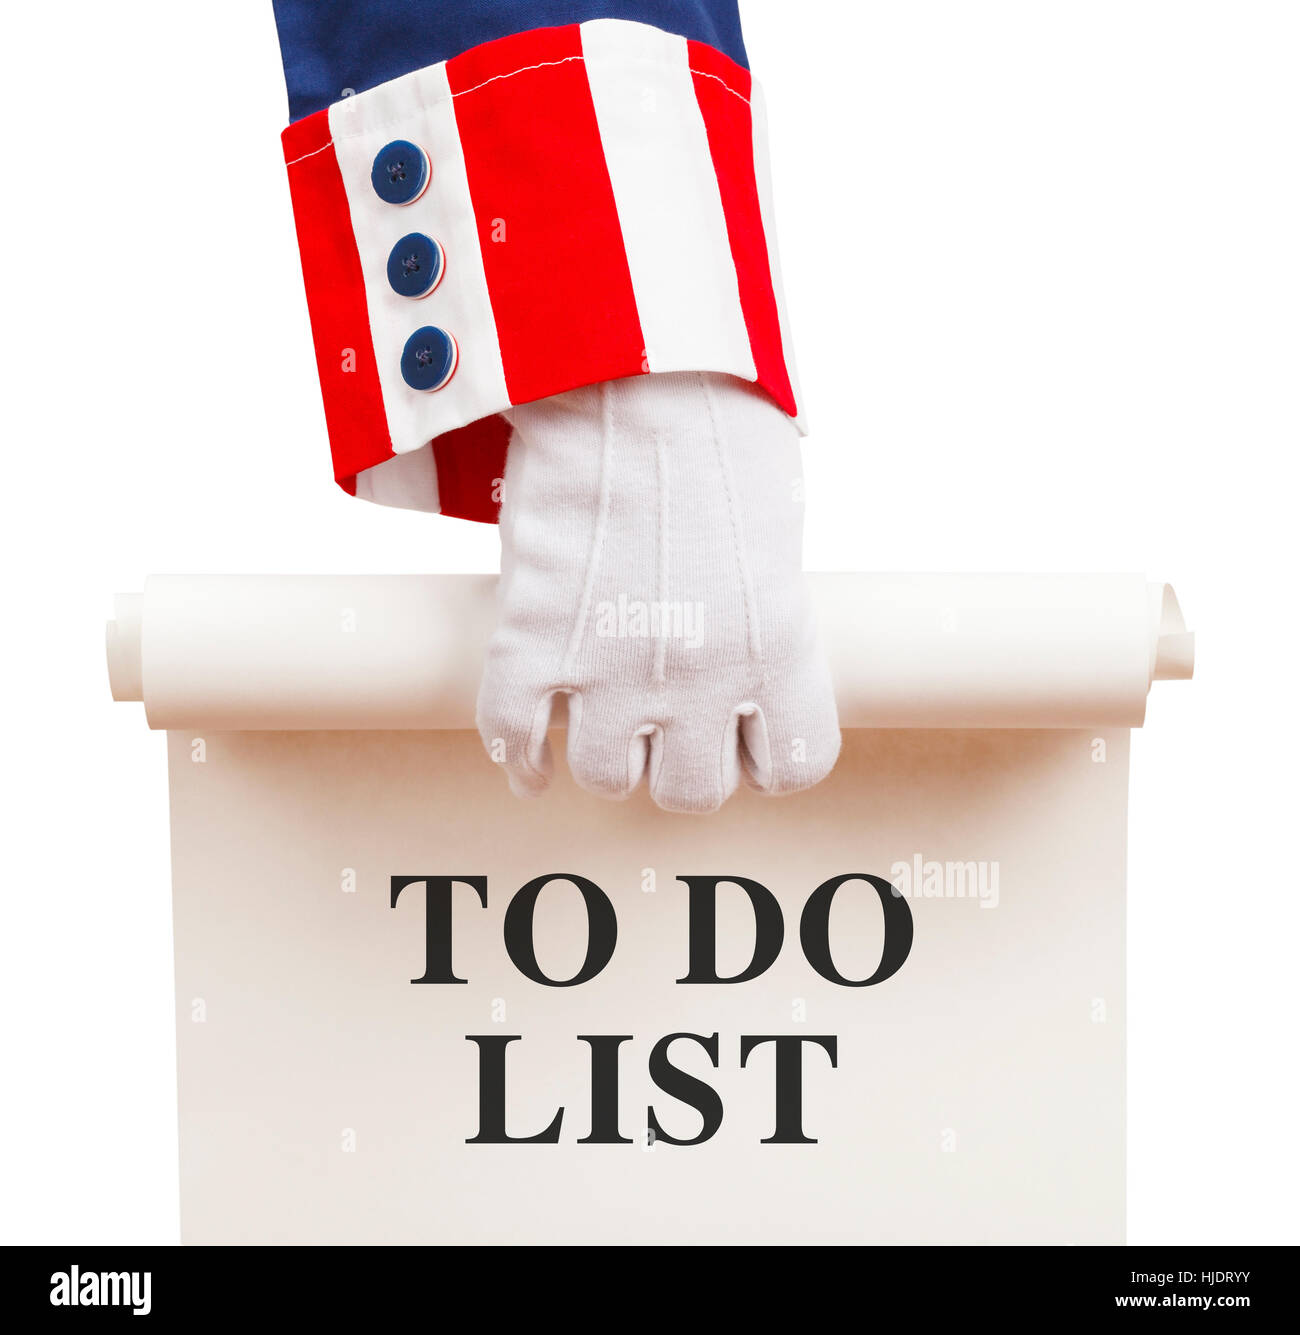 President Holding a to Do List Agenda Isolated on White Background. - Stock Image